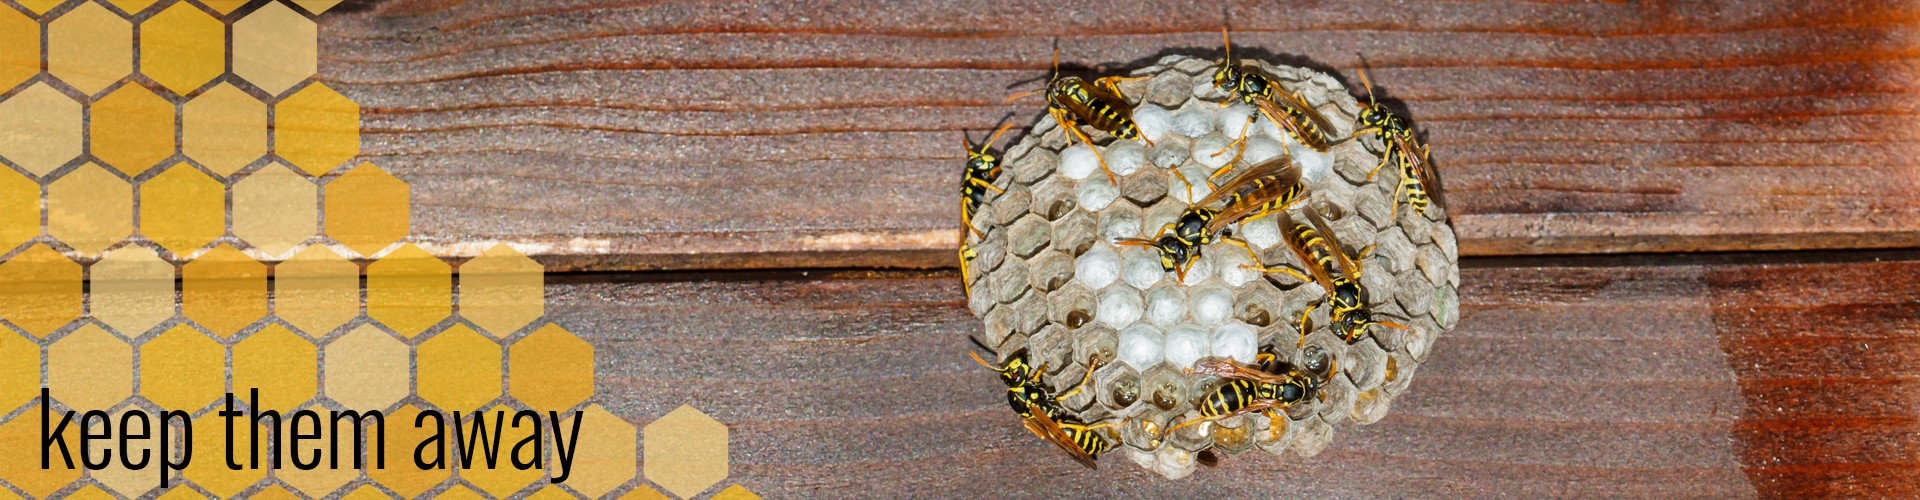 preventing bees wasps nests RV camping